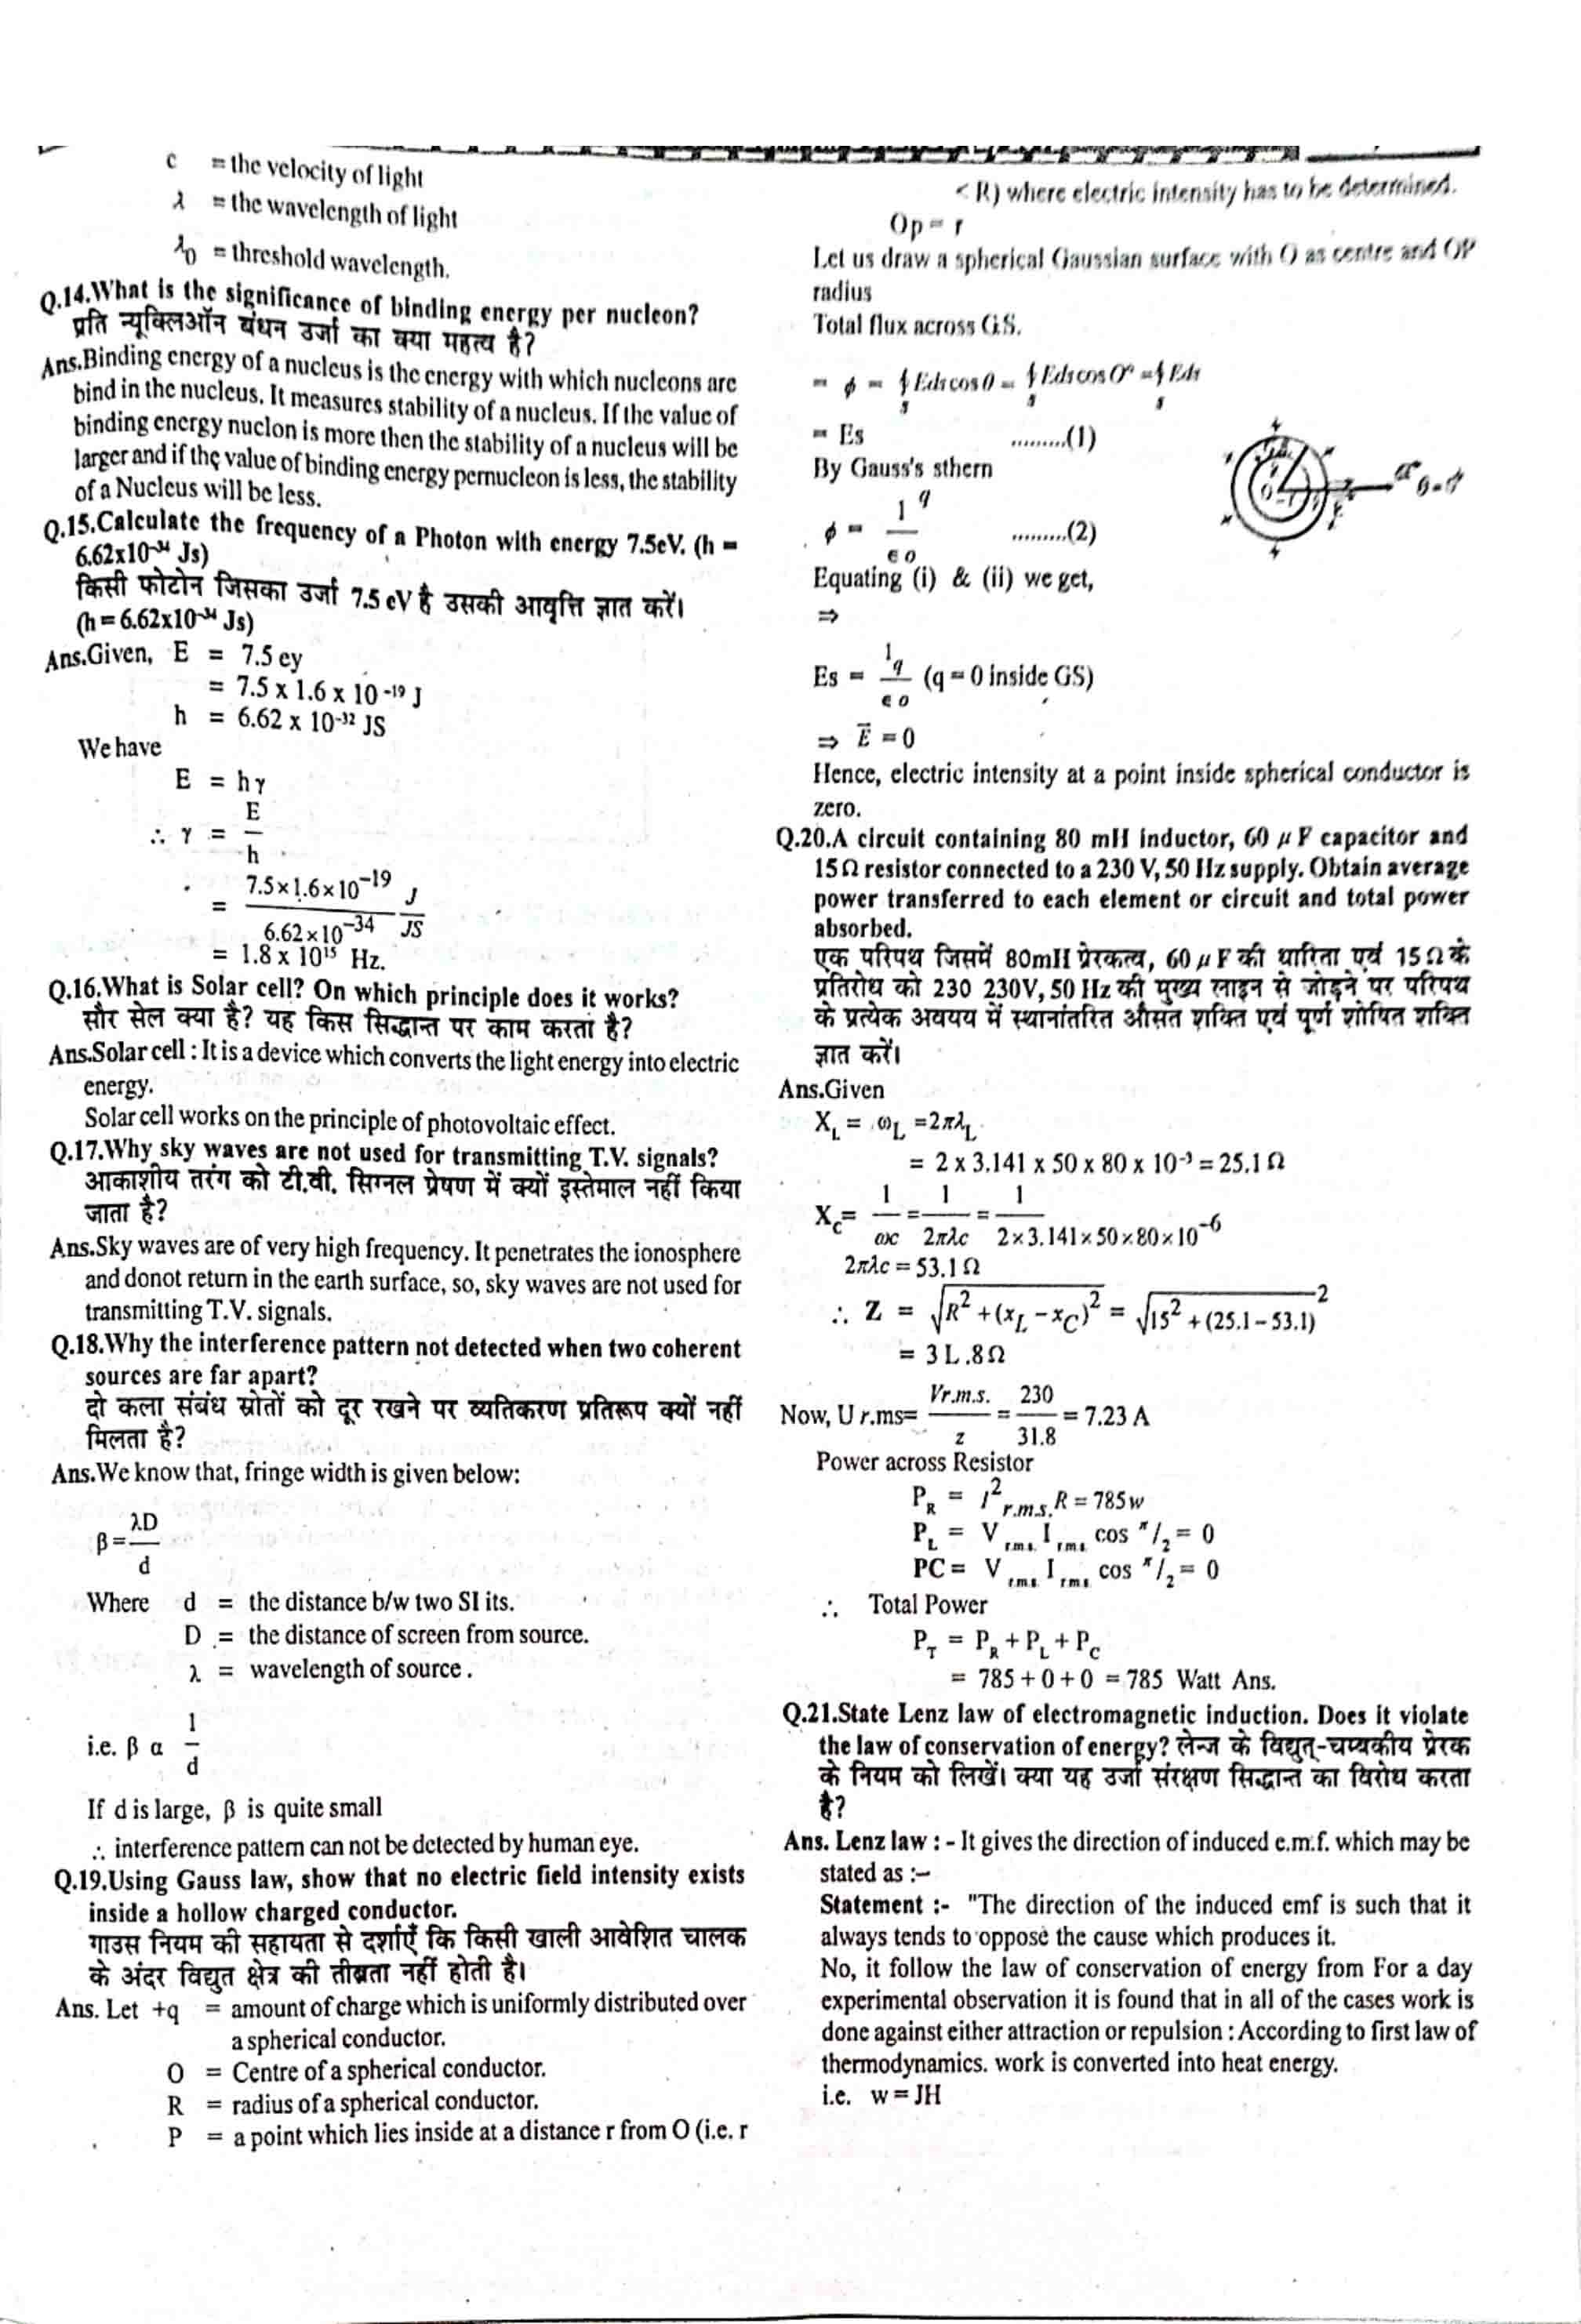 JAC Class 12 Physics 2012 Question Paper 02